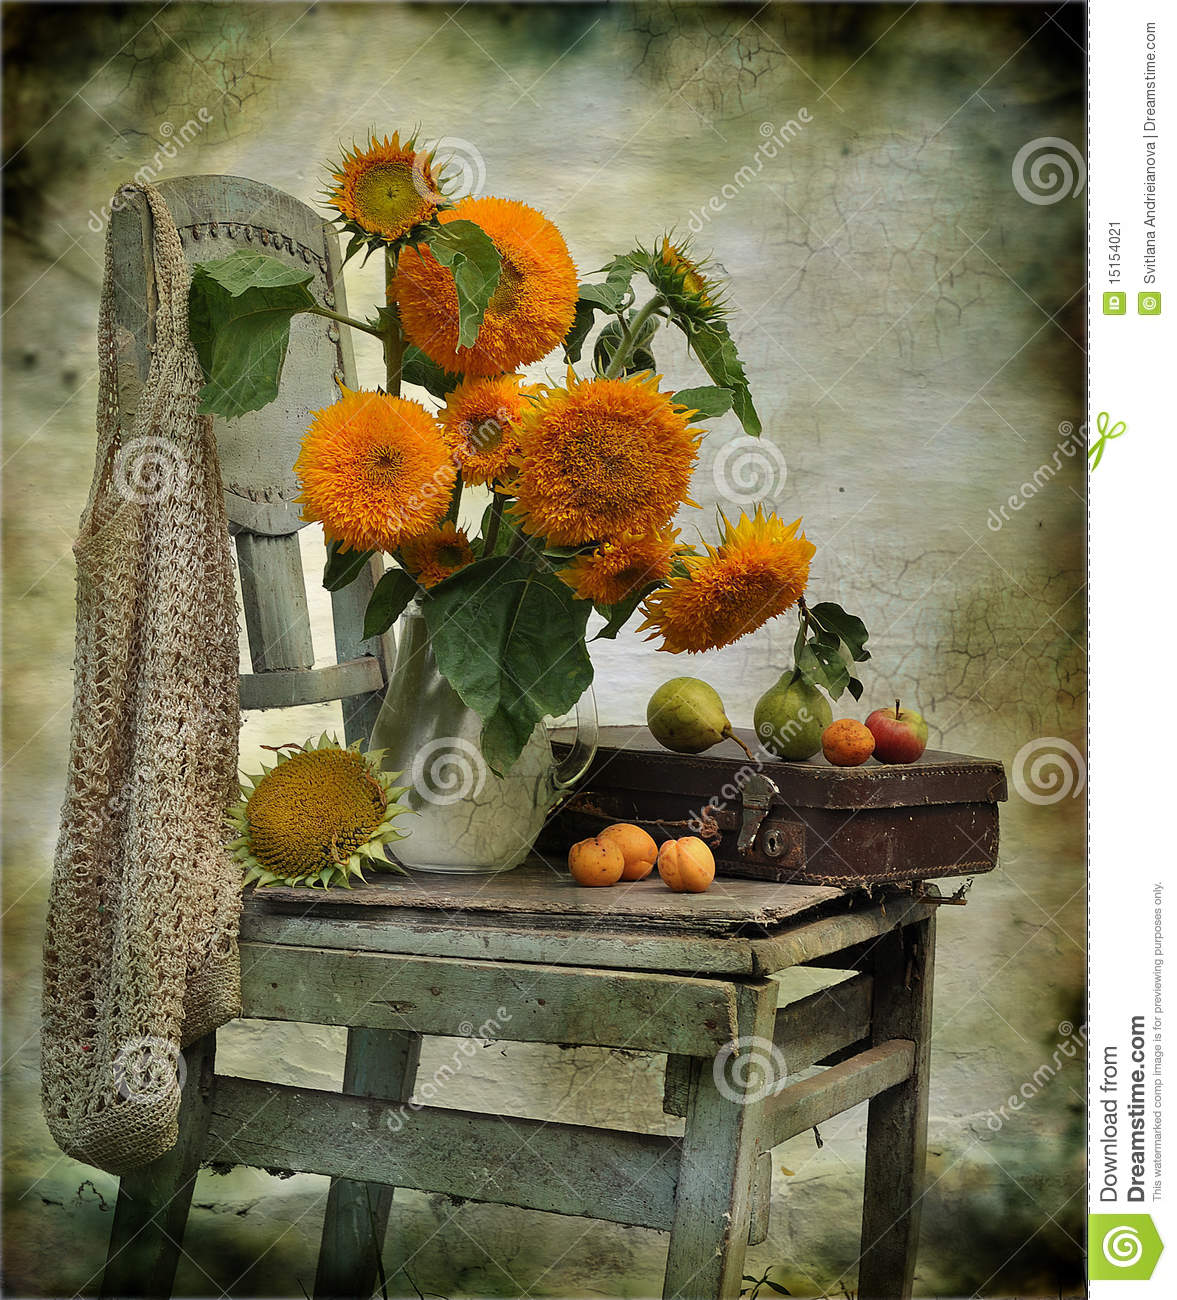 Still Life Consisting Of Sunflowers On A Chair Stock Image ...